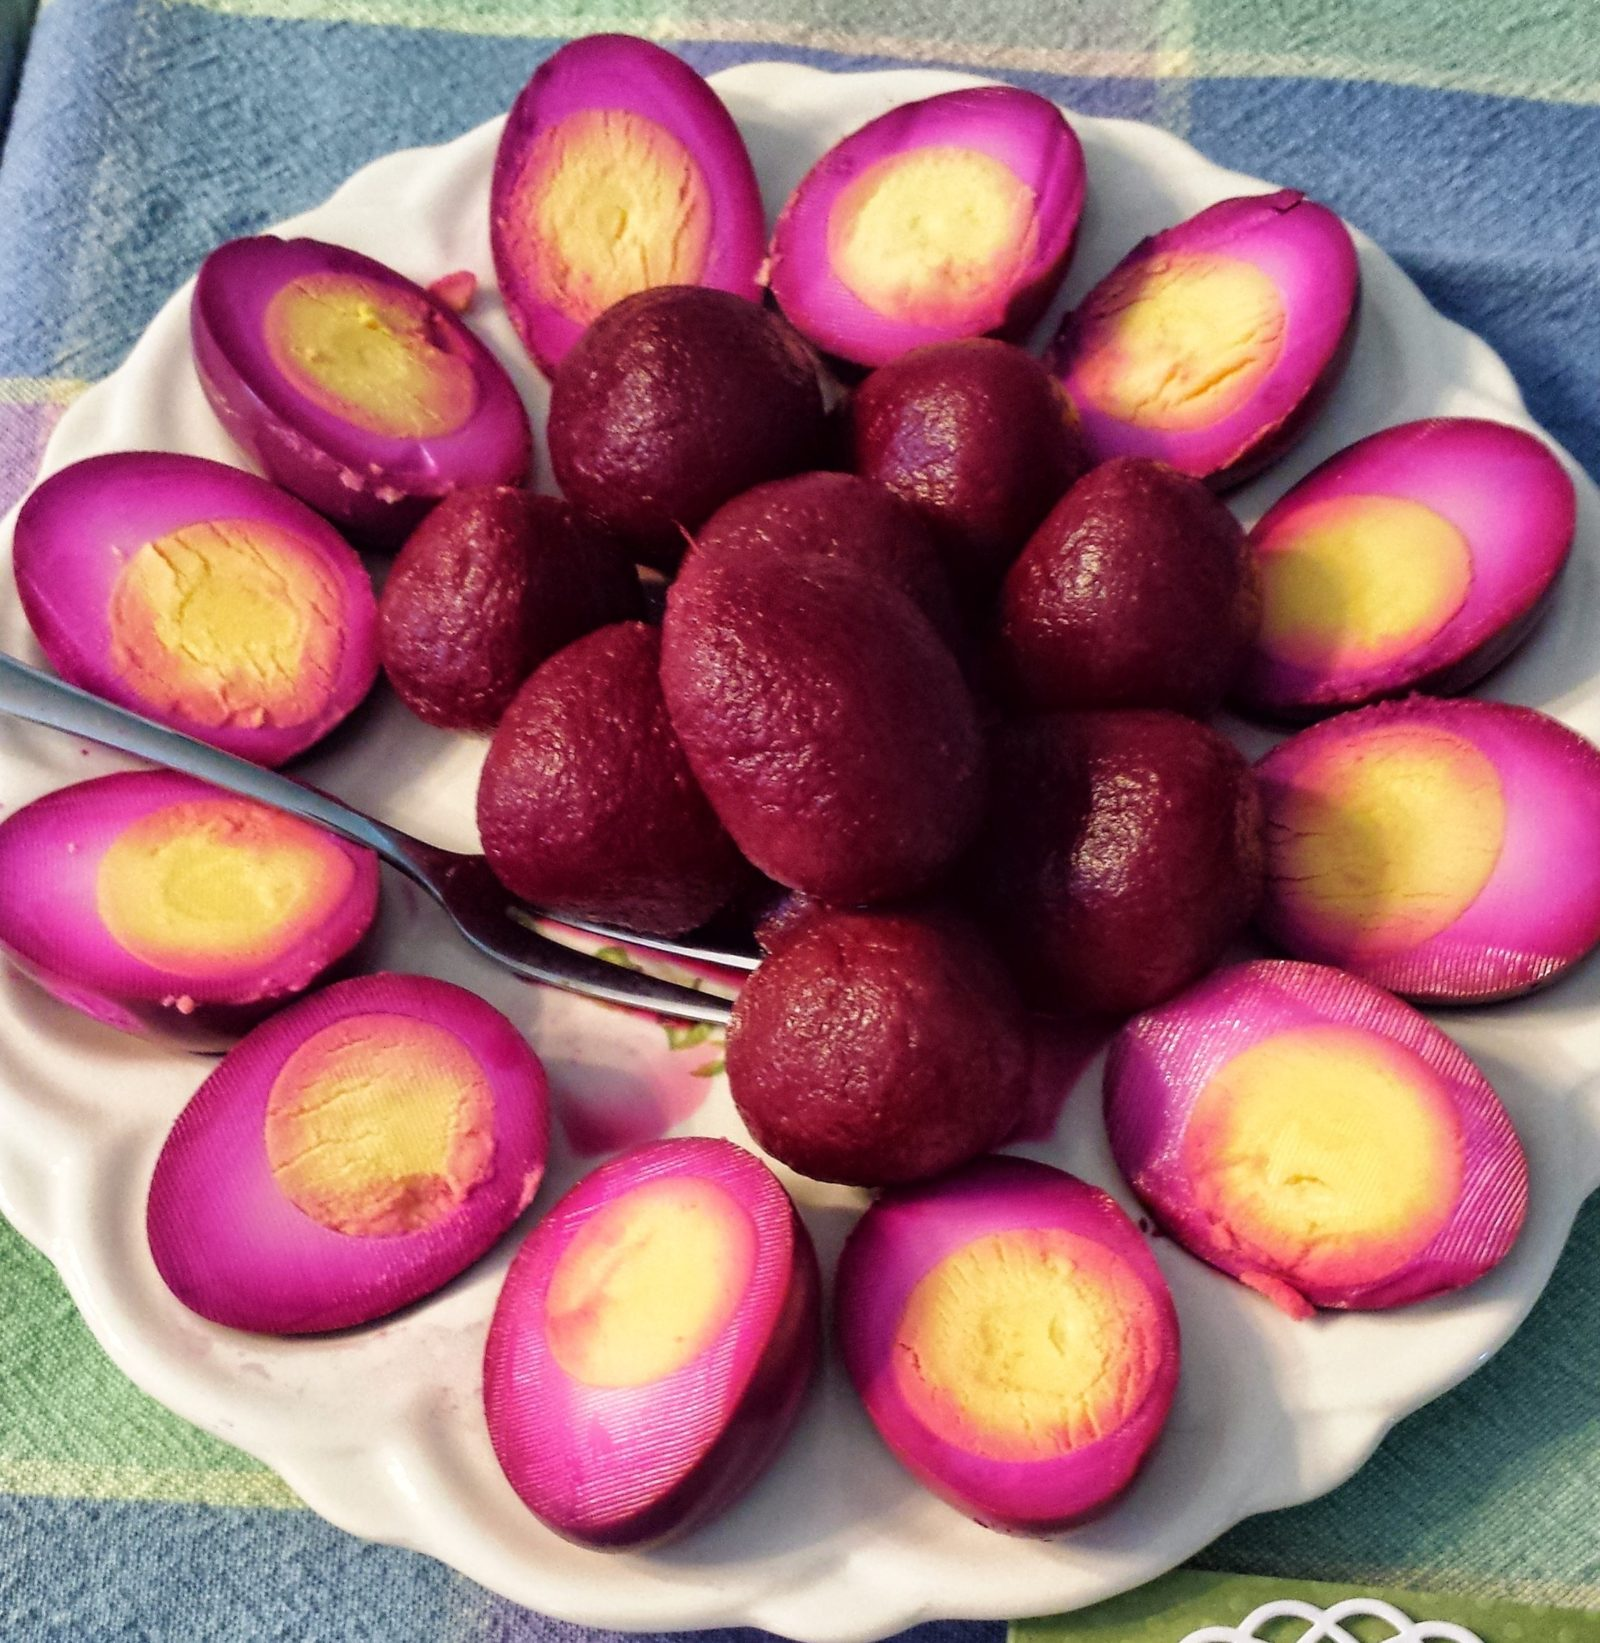 Pickled-Red-Beet-Eggs-On-Tray